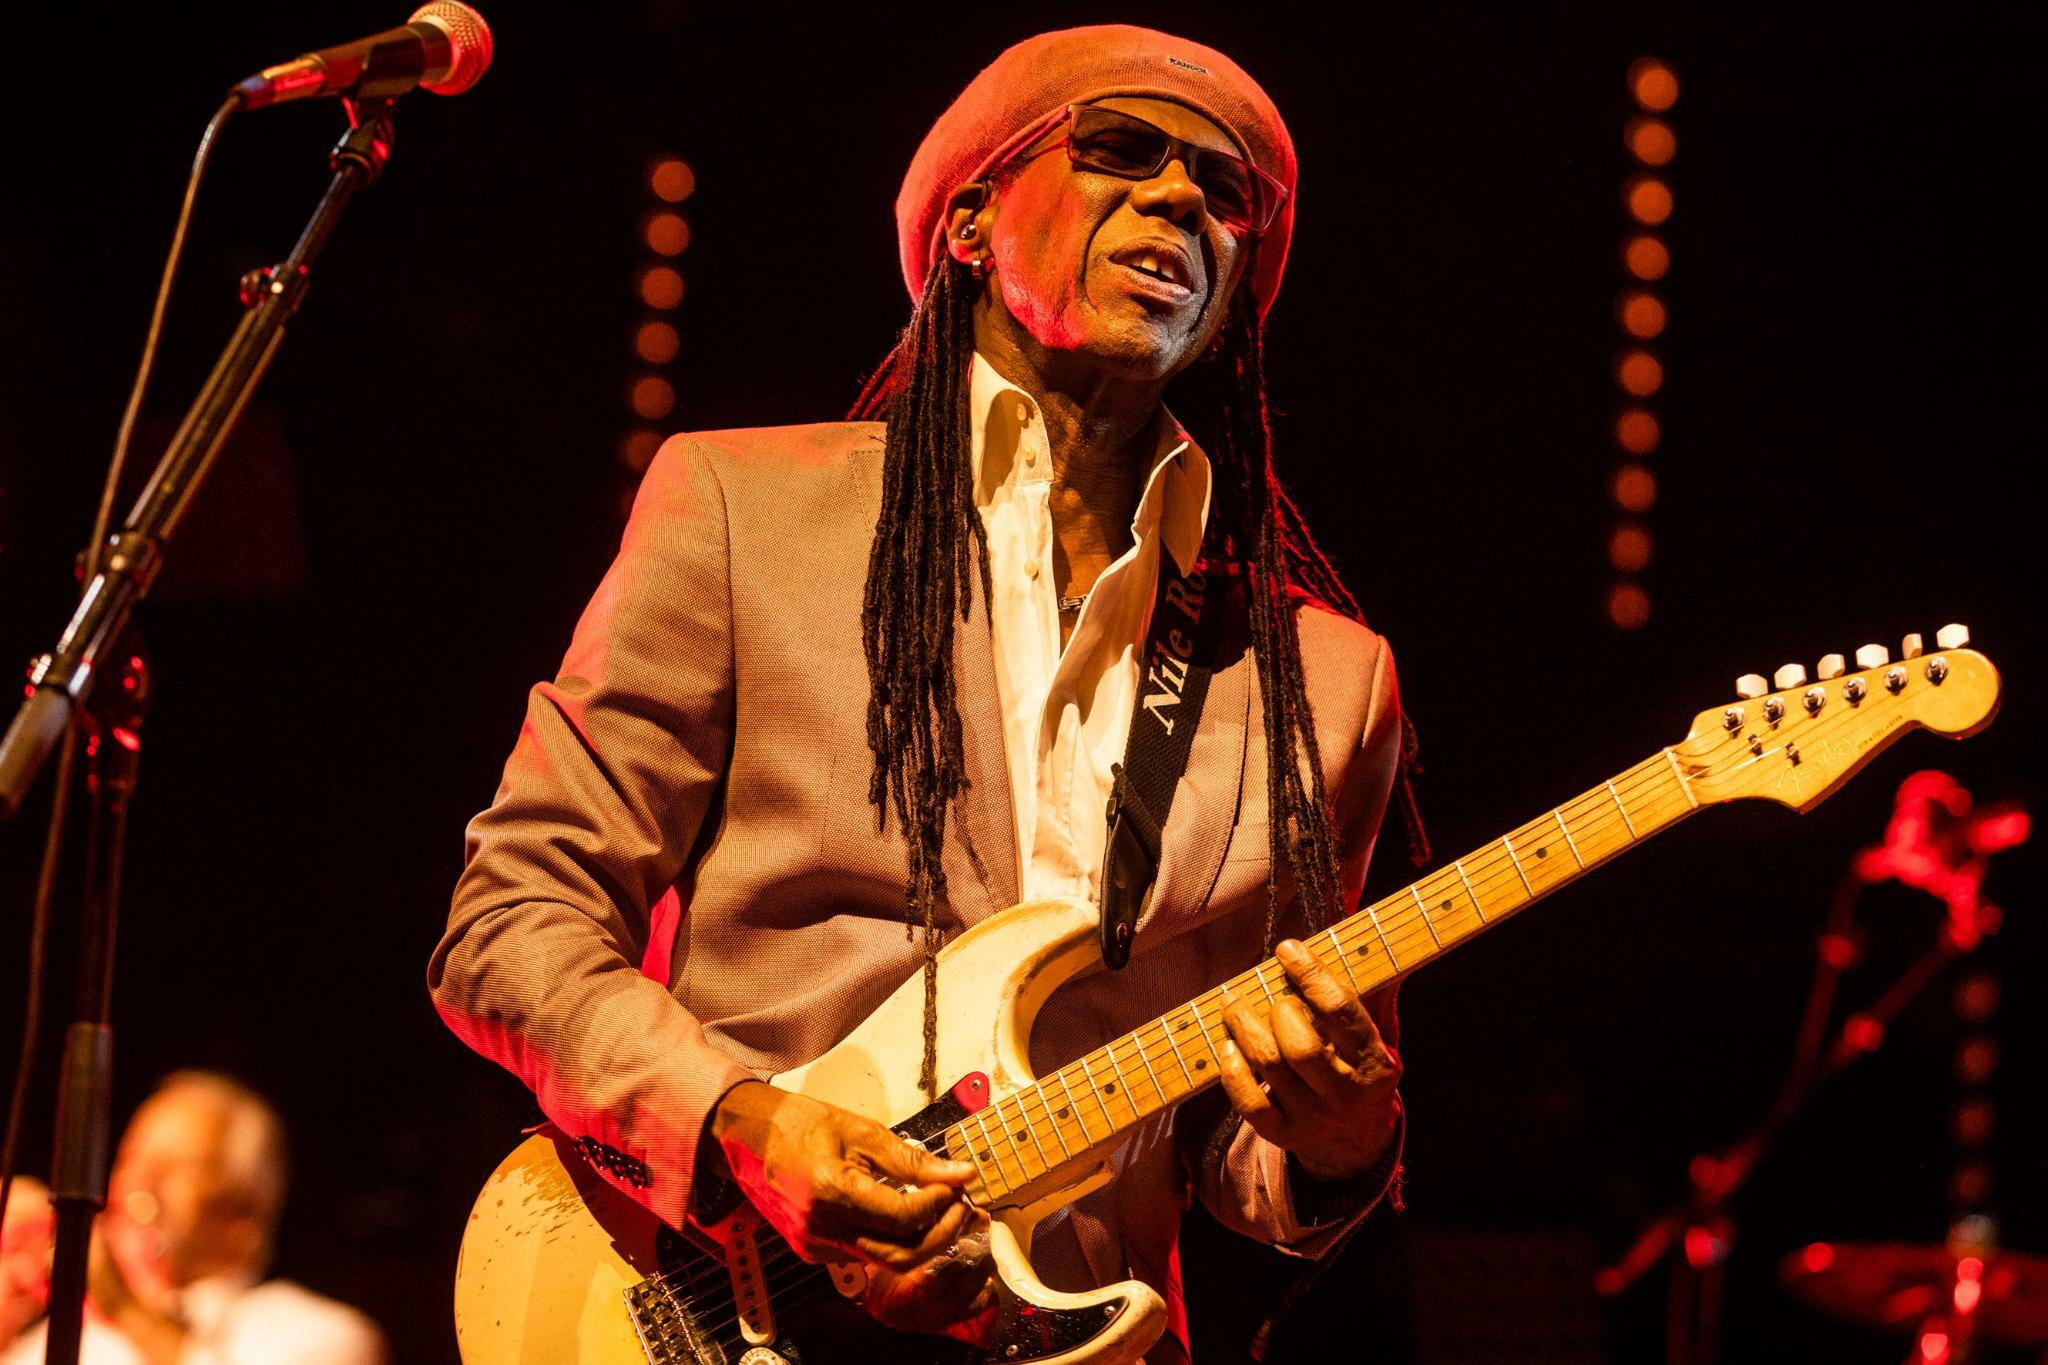 Nile Rodgers Chic Im Berliner Tempodrom Nile Rodgers Ist Der